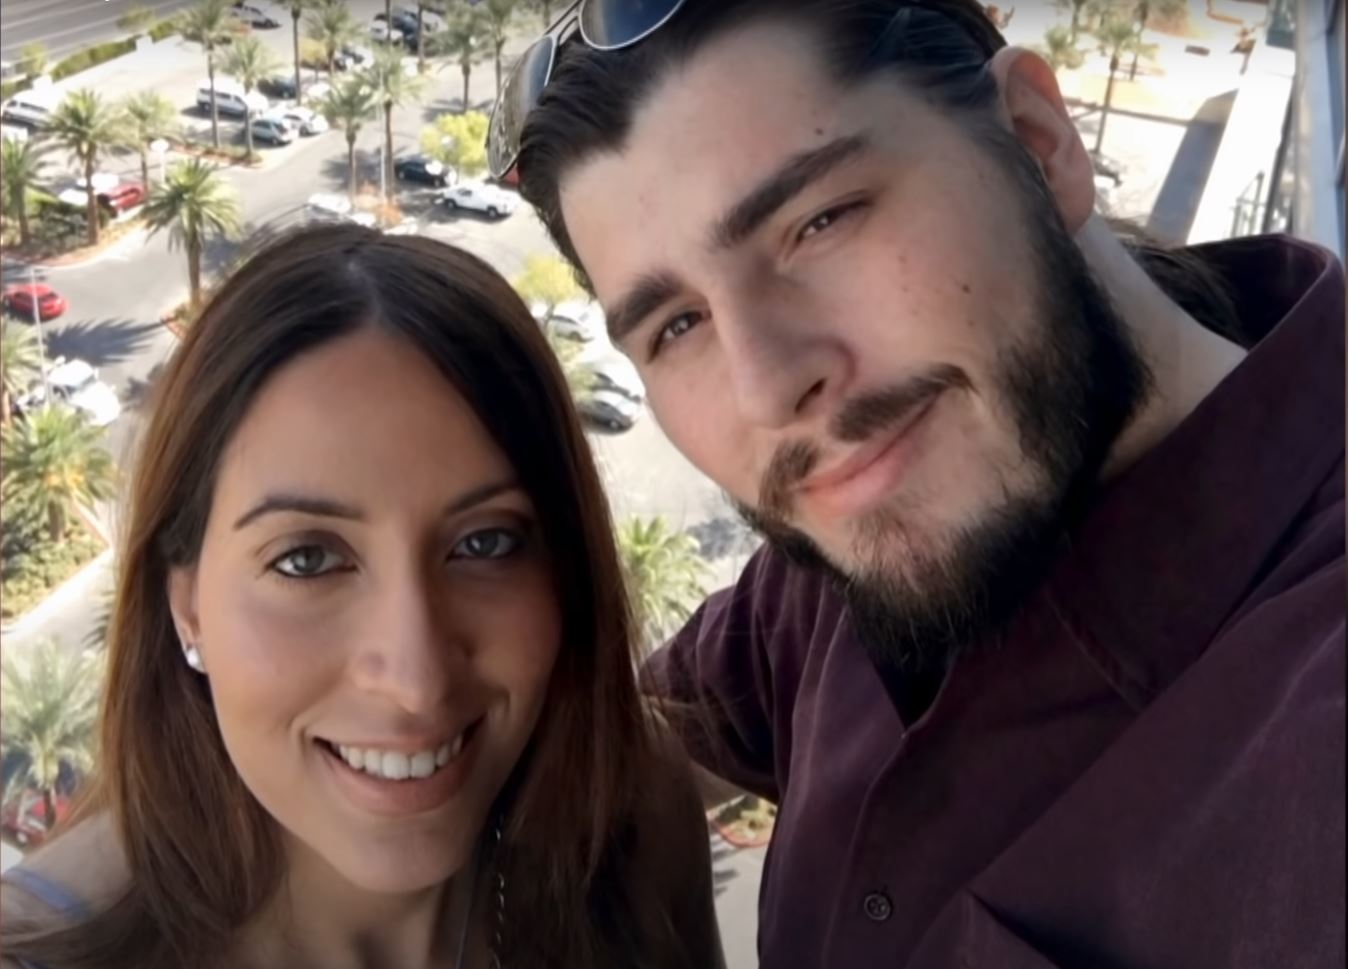 Amira and Andrew from '90 Day Fiancé '